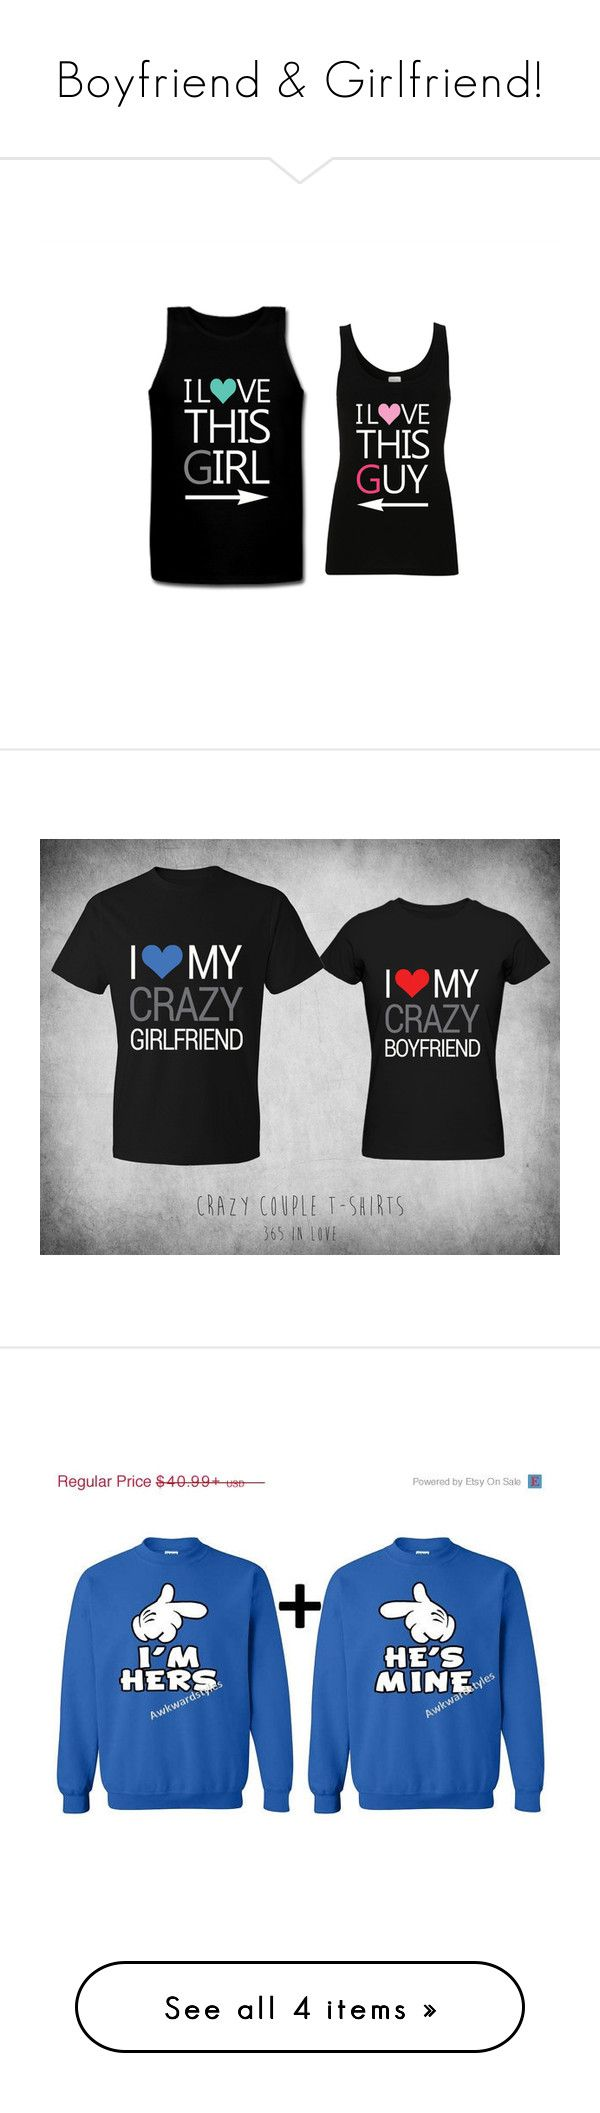 """Boyfriend & Girlfriend!"" by veronica-floyd ❤ liked on Polyvore featuring tops, shirts, tank tops, shirt tops, cotton sleeveless tops, sleeveless tank, cotton tank, cotton shirts, t-shirts and couples"